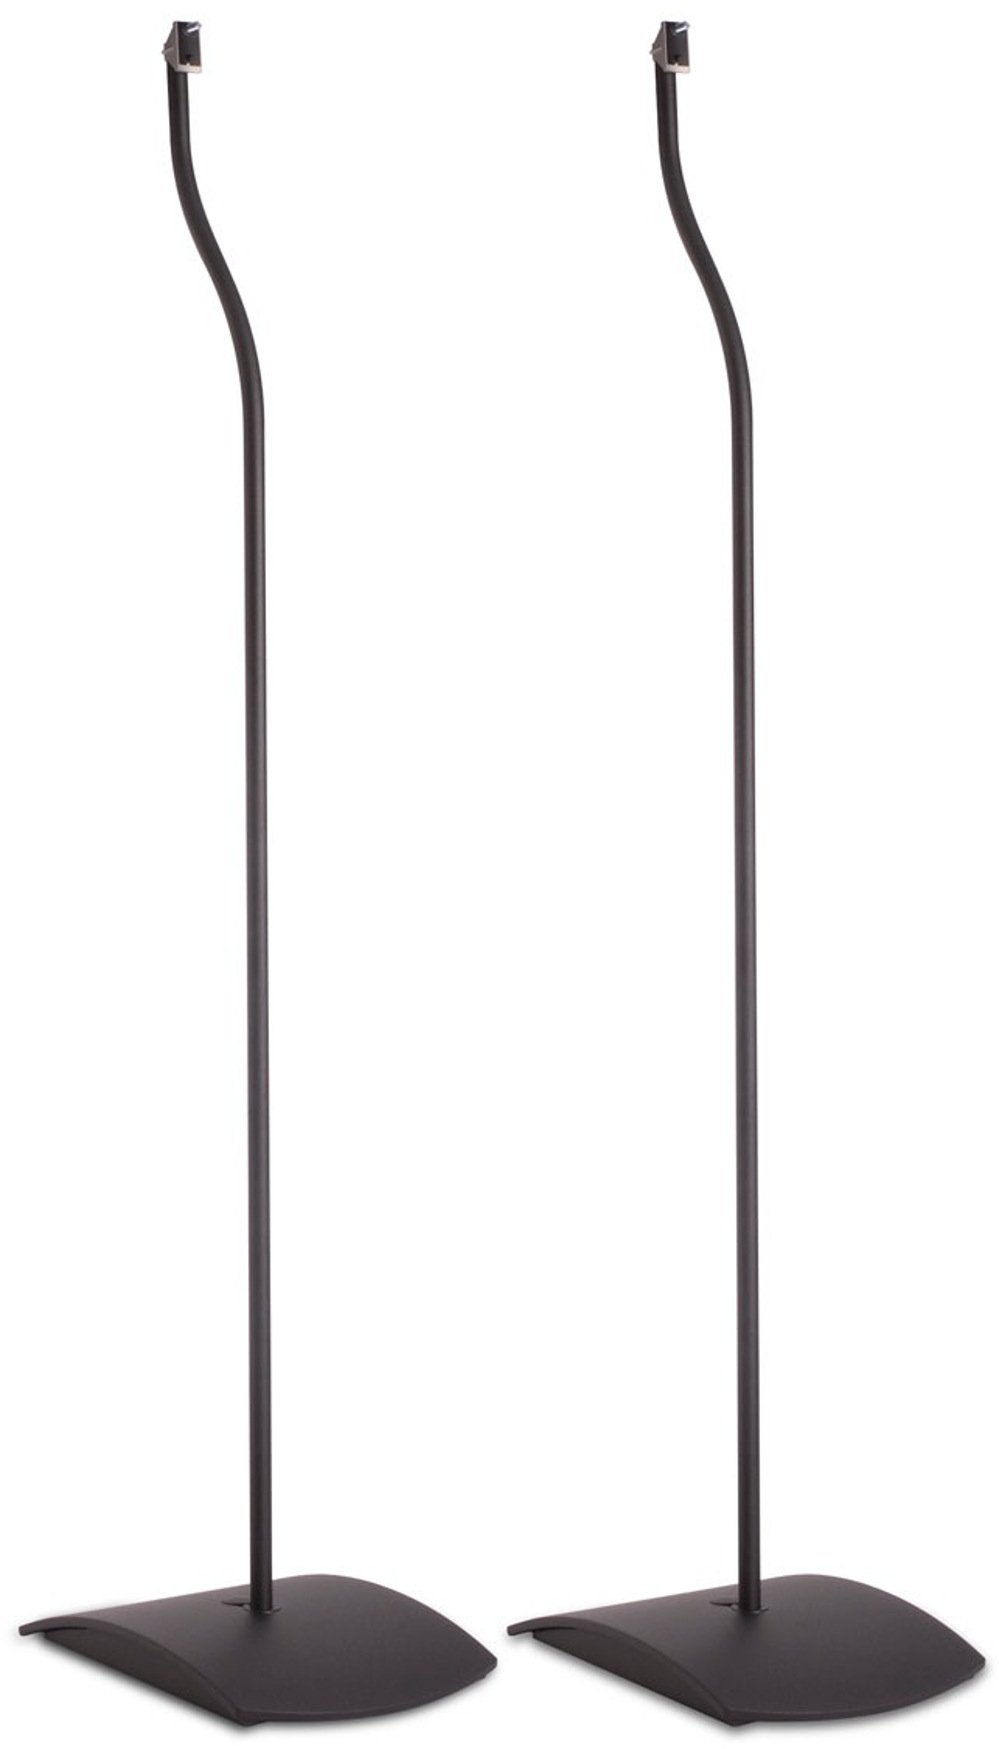 Bose UFS-20 Series II Universal Floor Stands by Bose